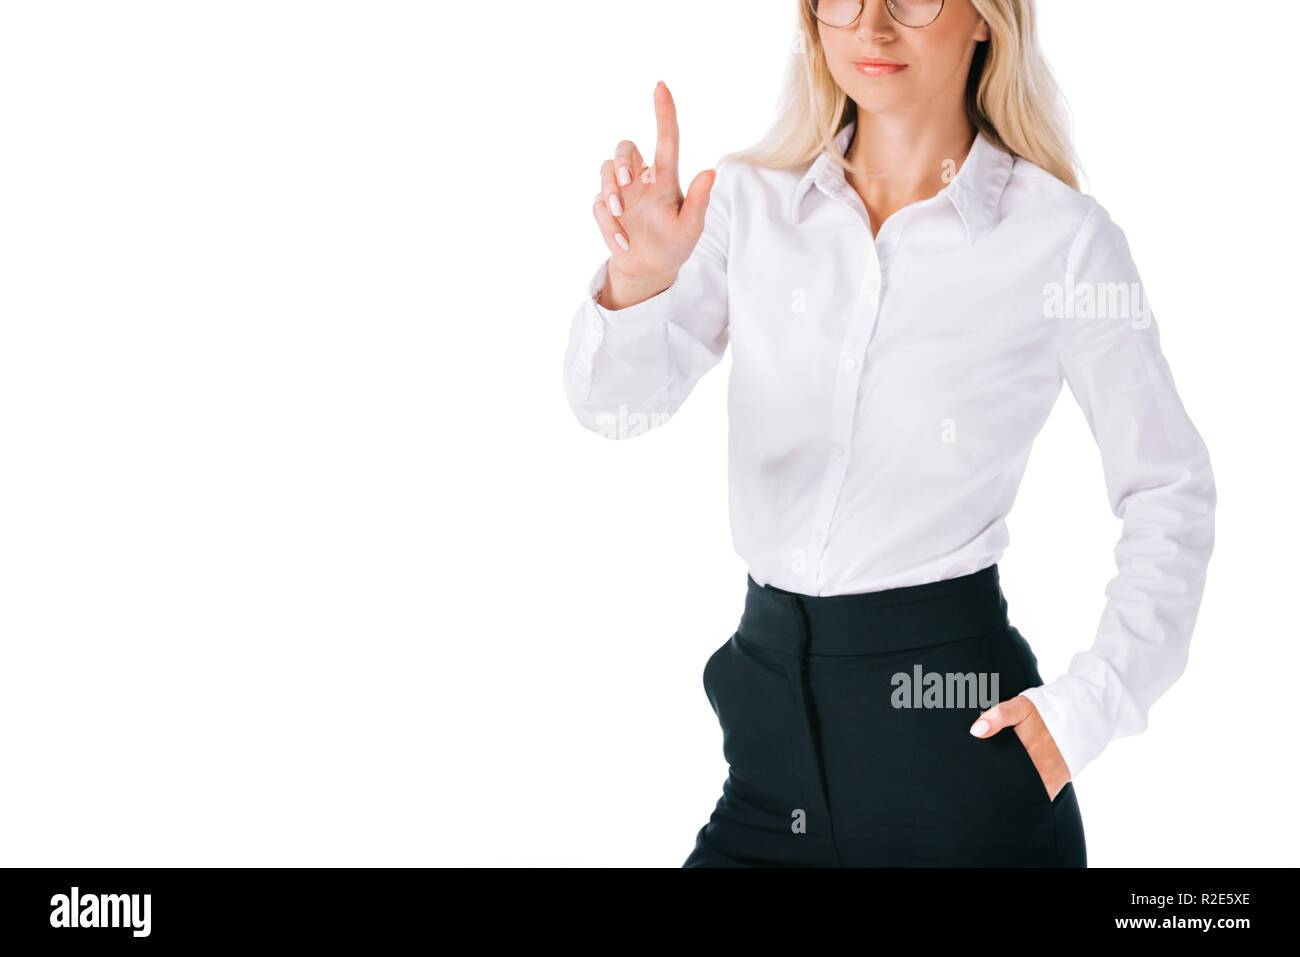 partial view of businesswoman in formal wear gesturing isolated on white - Stock Image